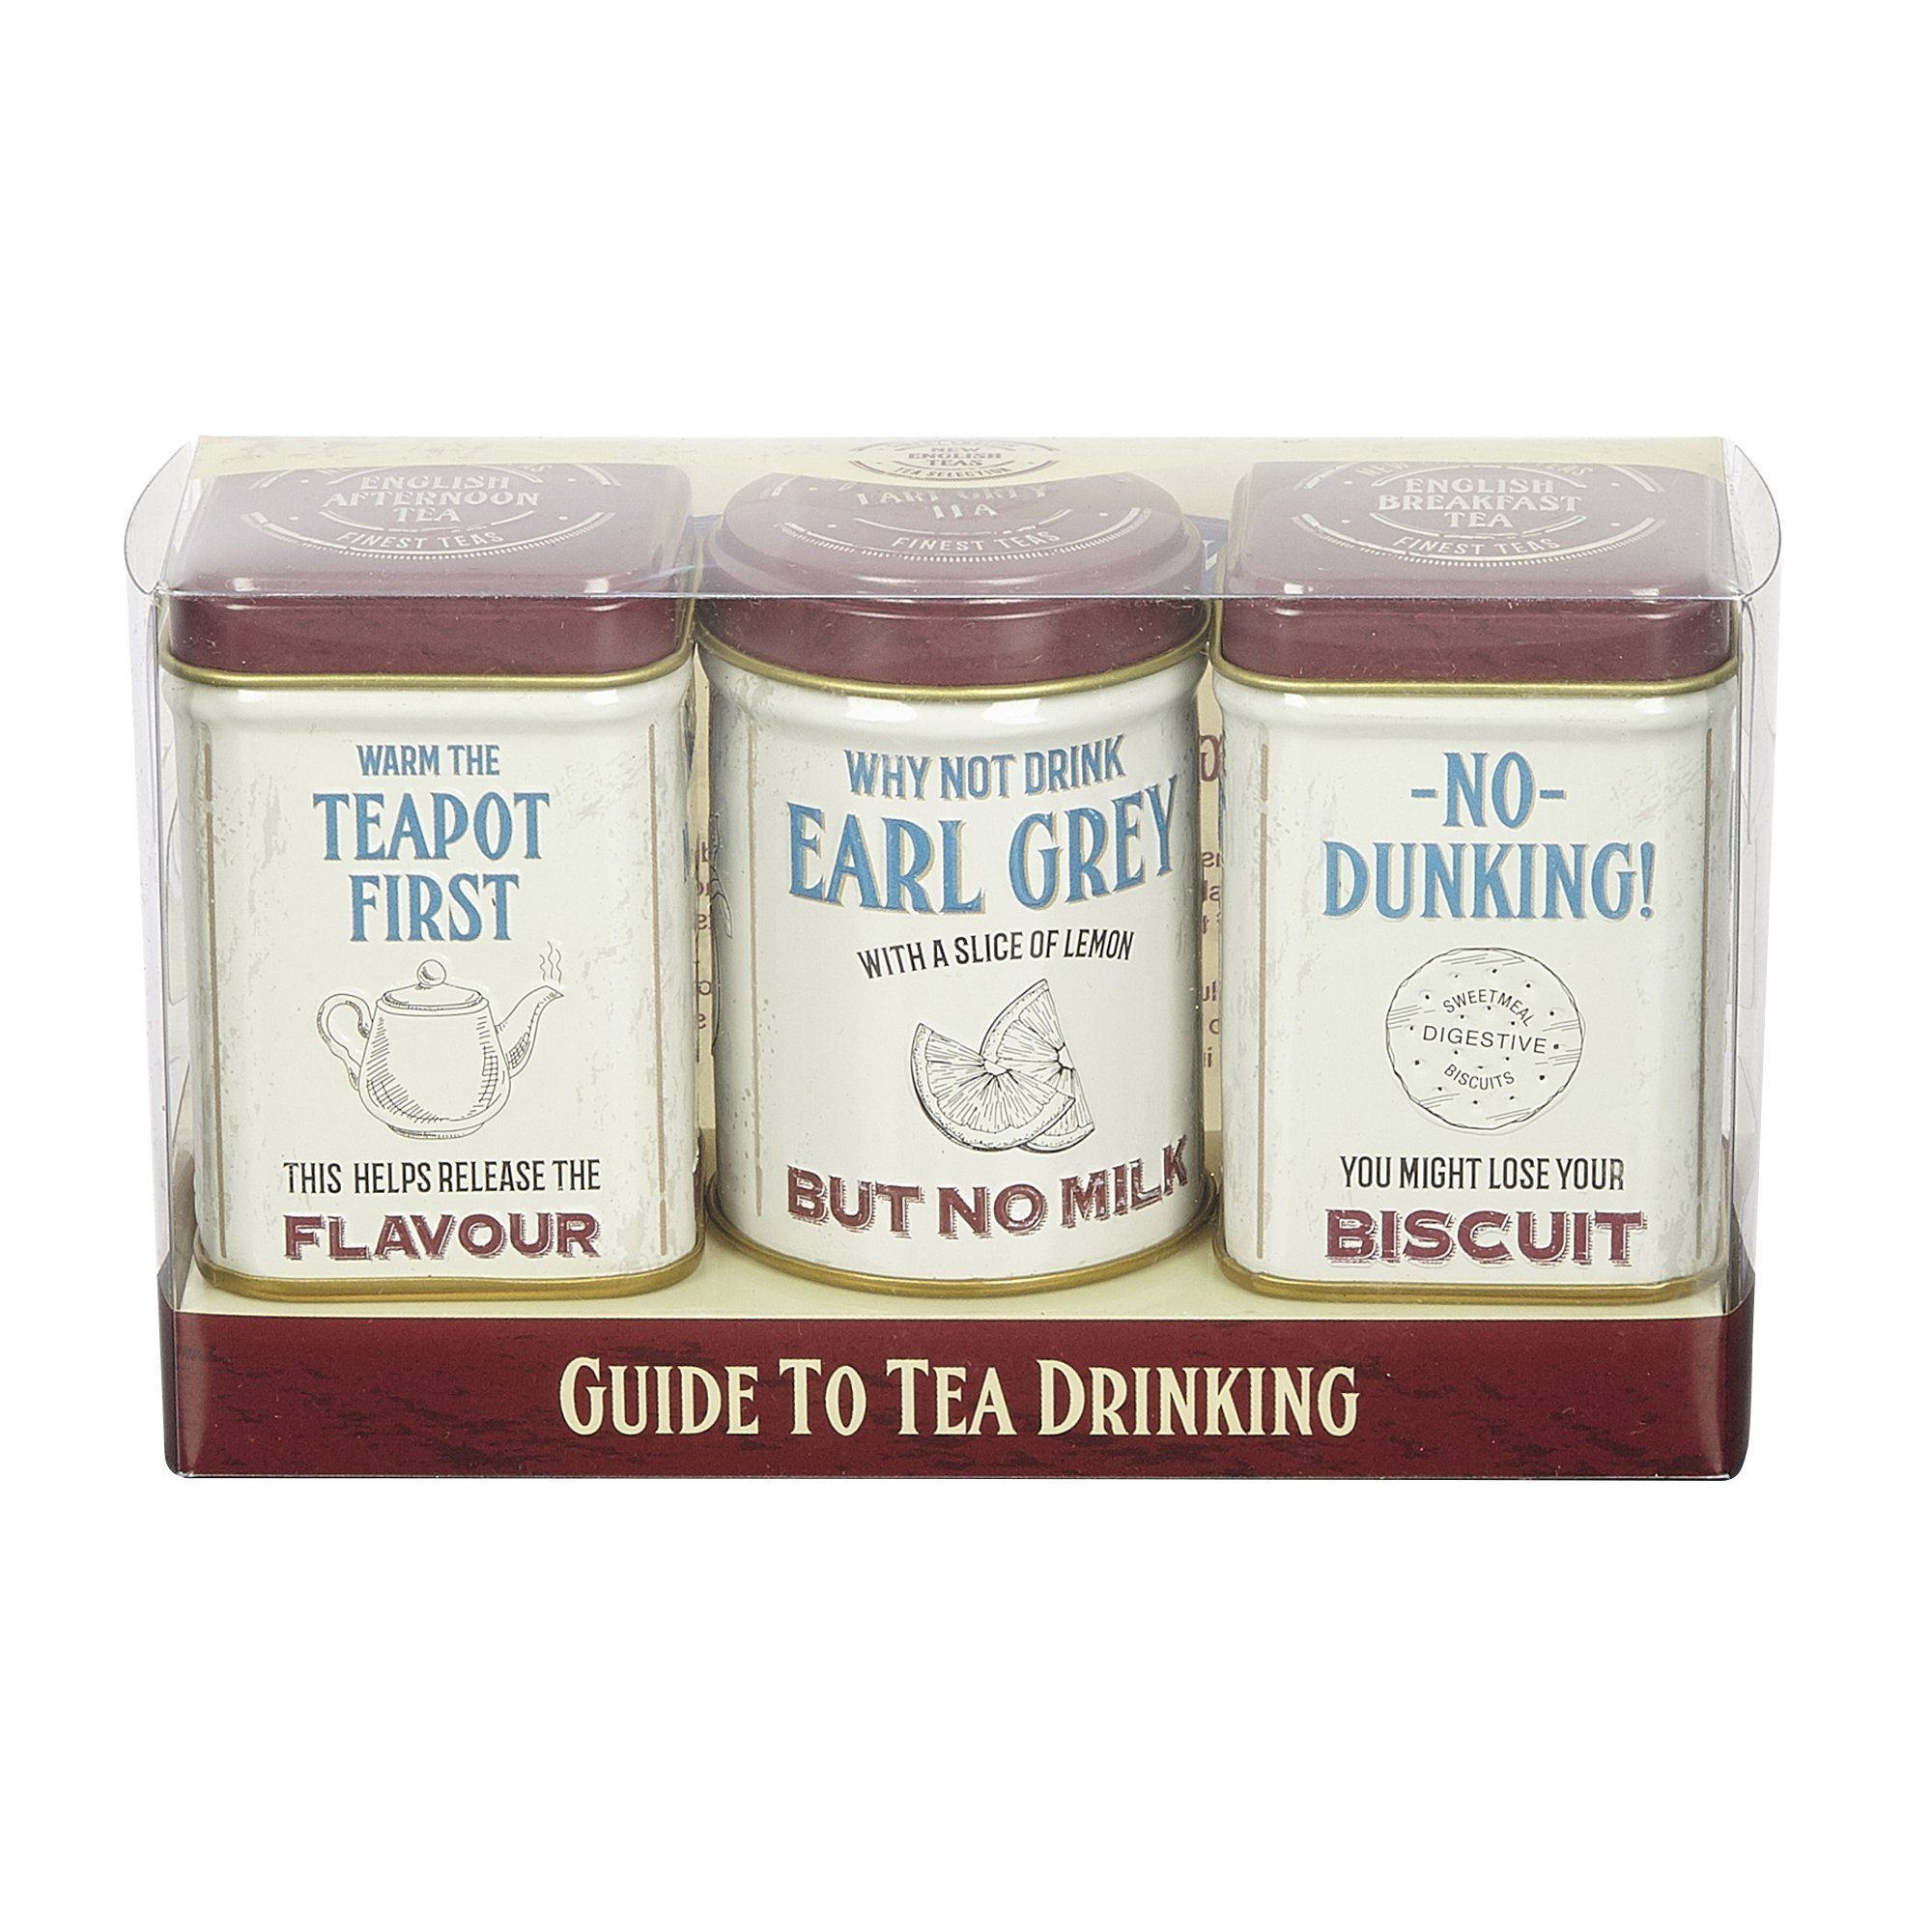 Guide to Tea Drinking Mini Tins with loose-leaf black tea Black Tea New English Teas